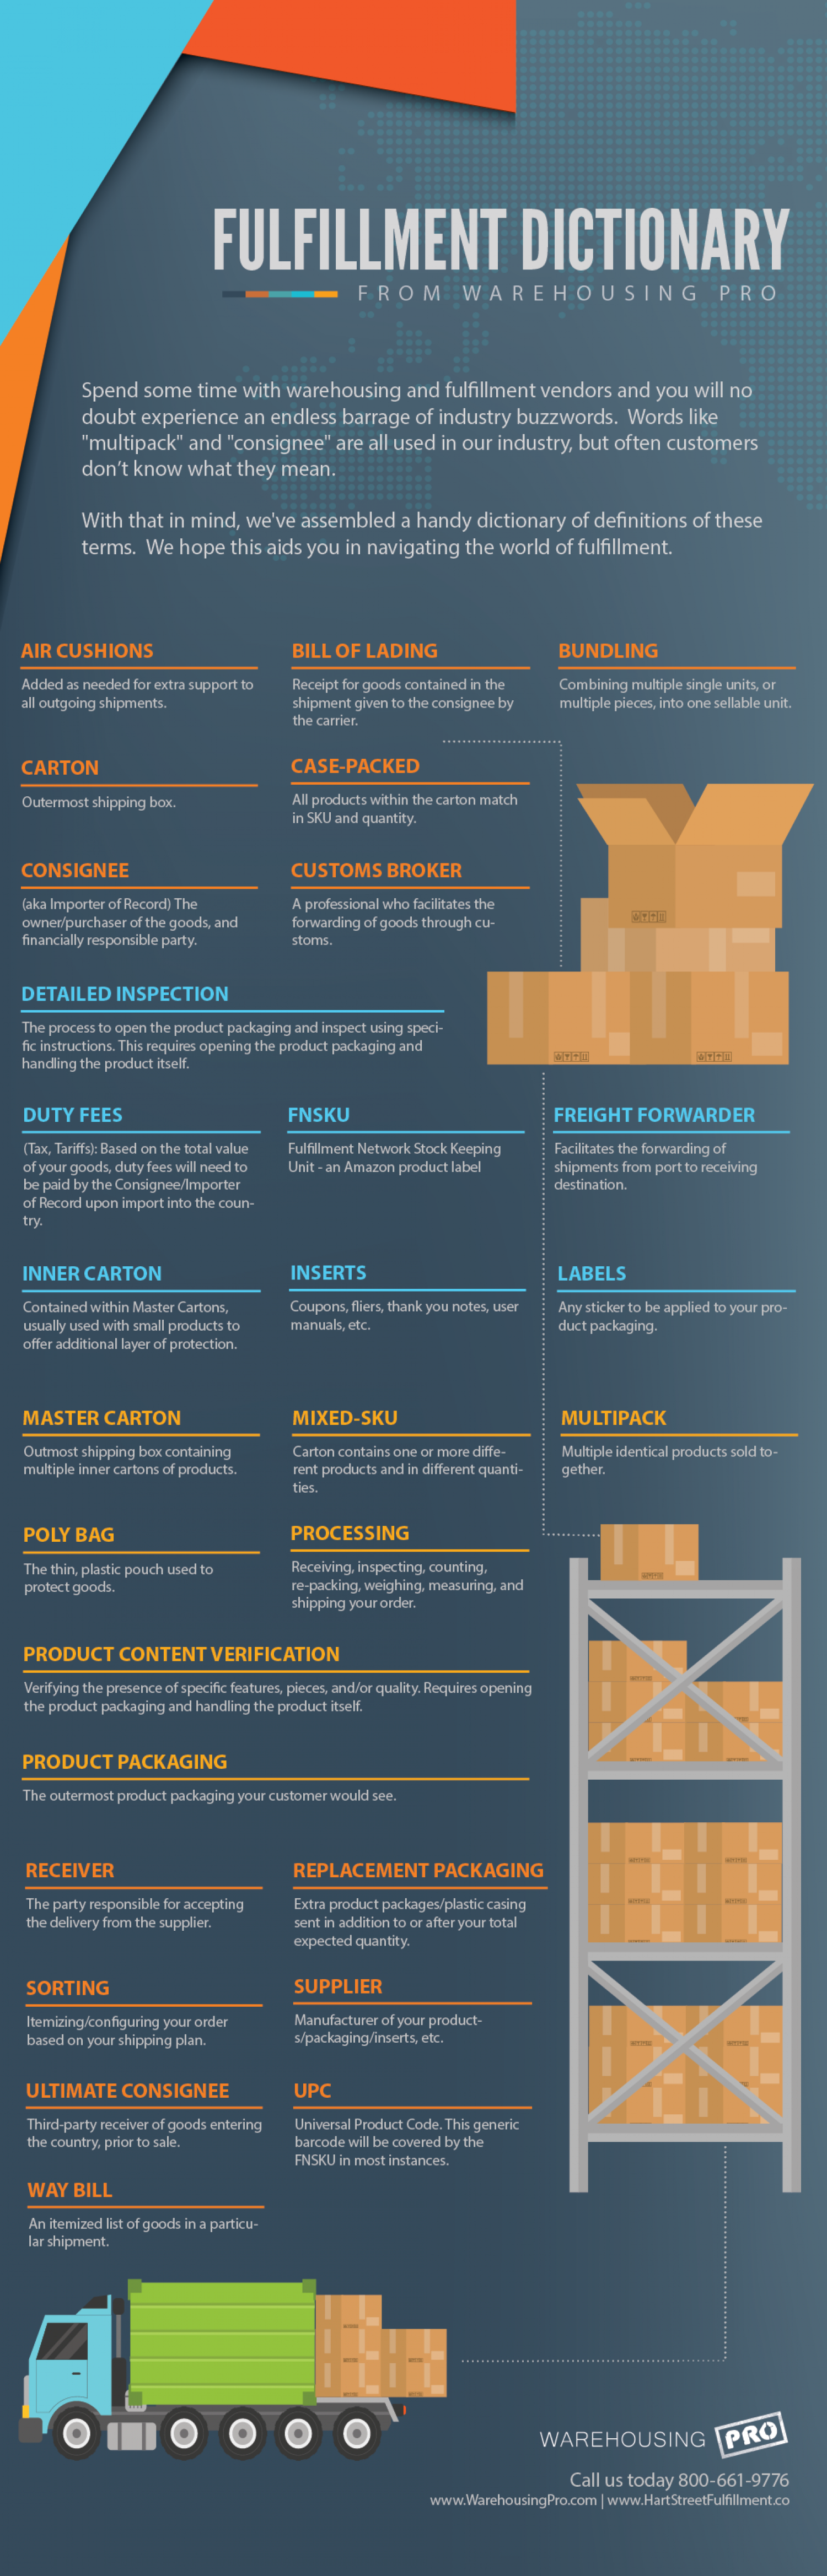 Fulfillment Dictionary From Warehousing Pro  Infographic